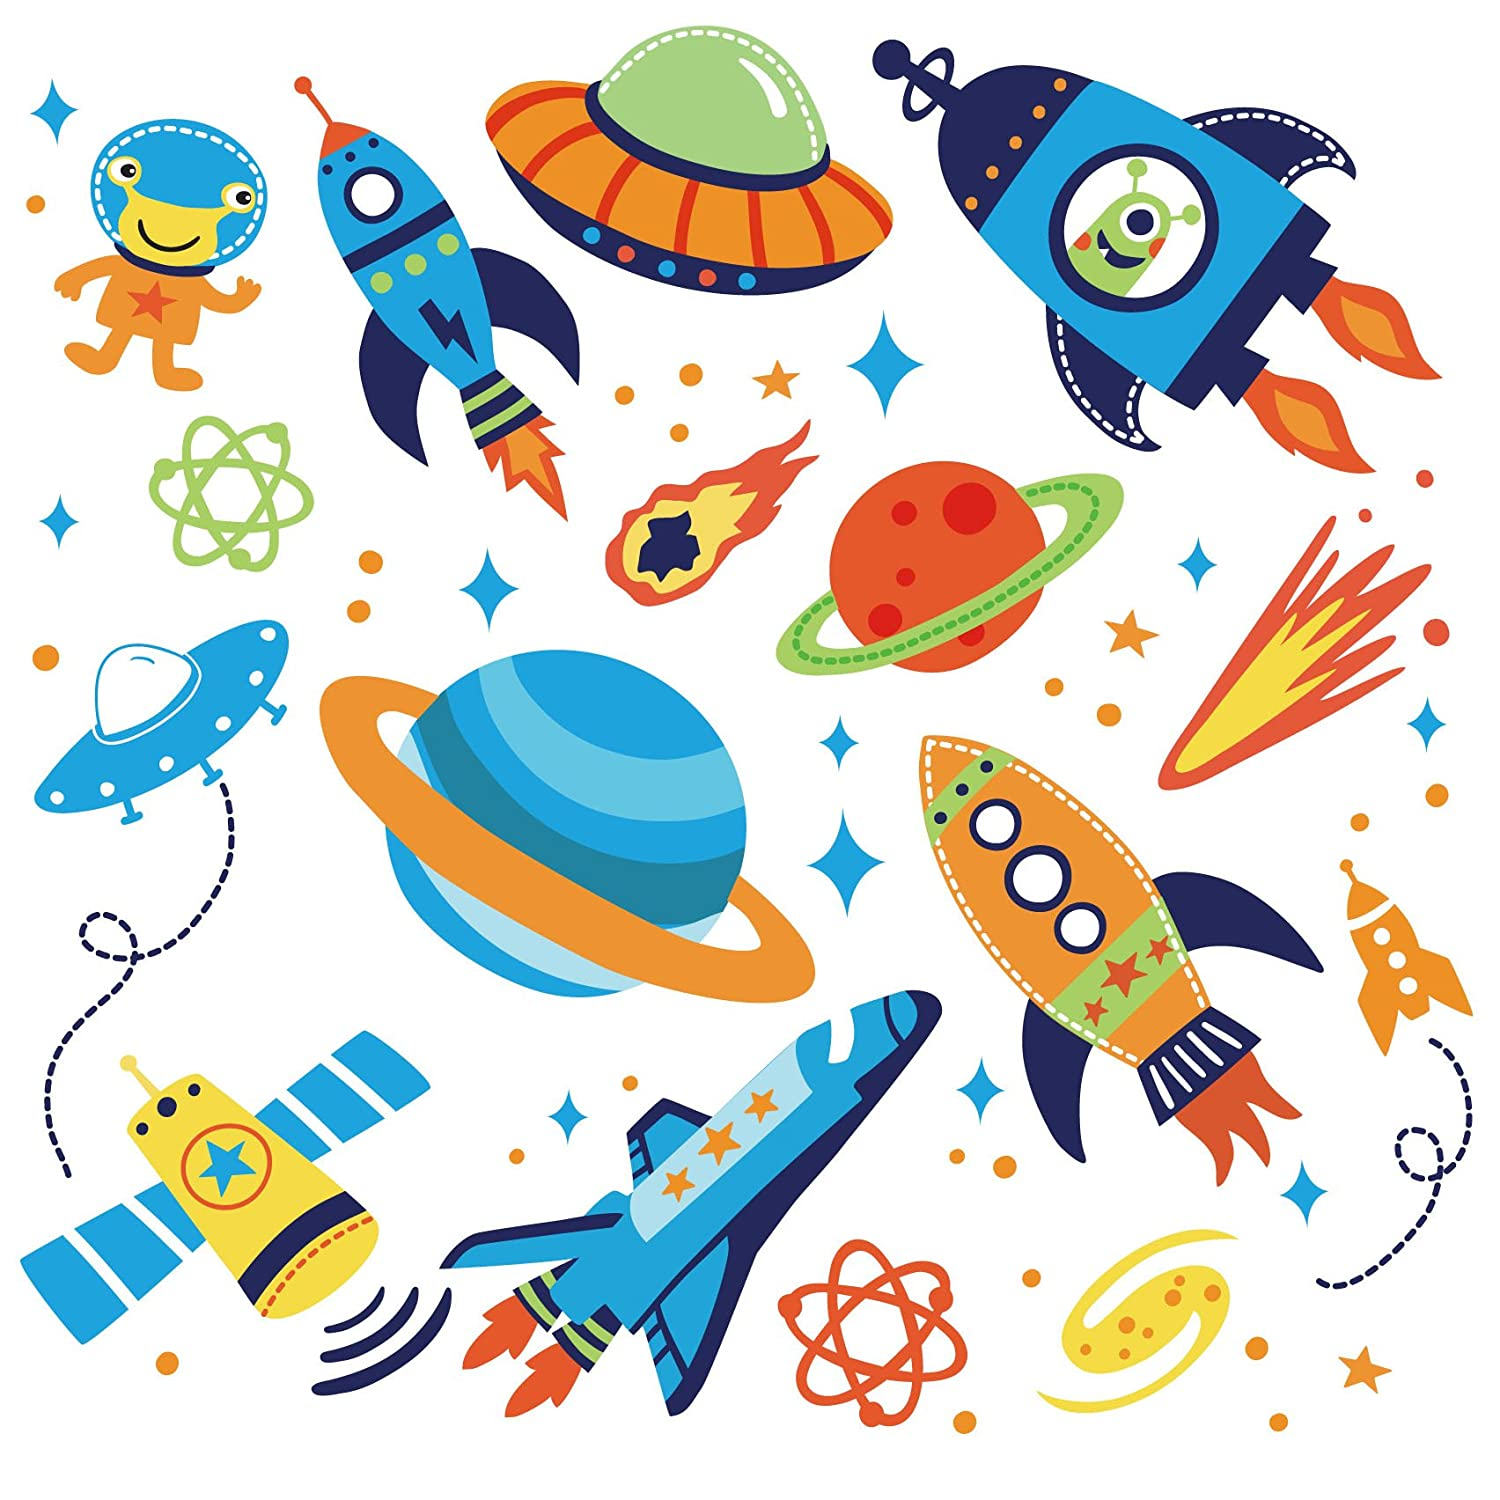 Amazon.com: Super Space Explorer Decorative Peel U0026 Stick Wall Art Sticker  Decals: Baby Part 21